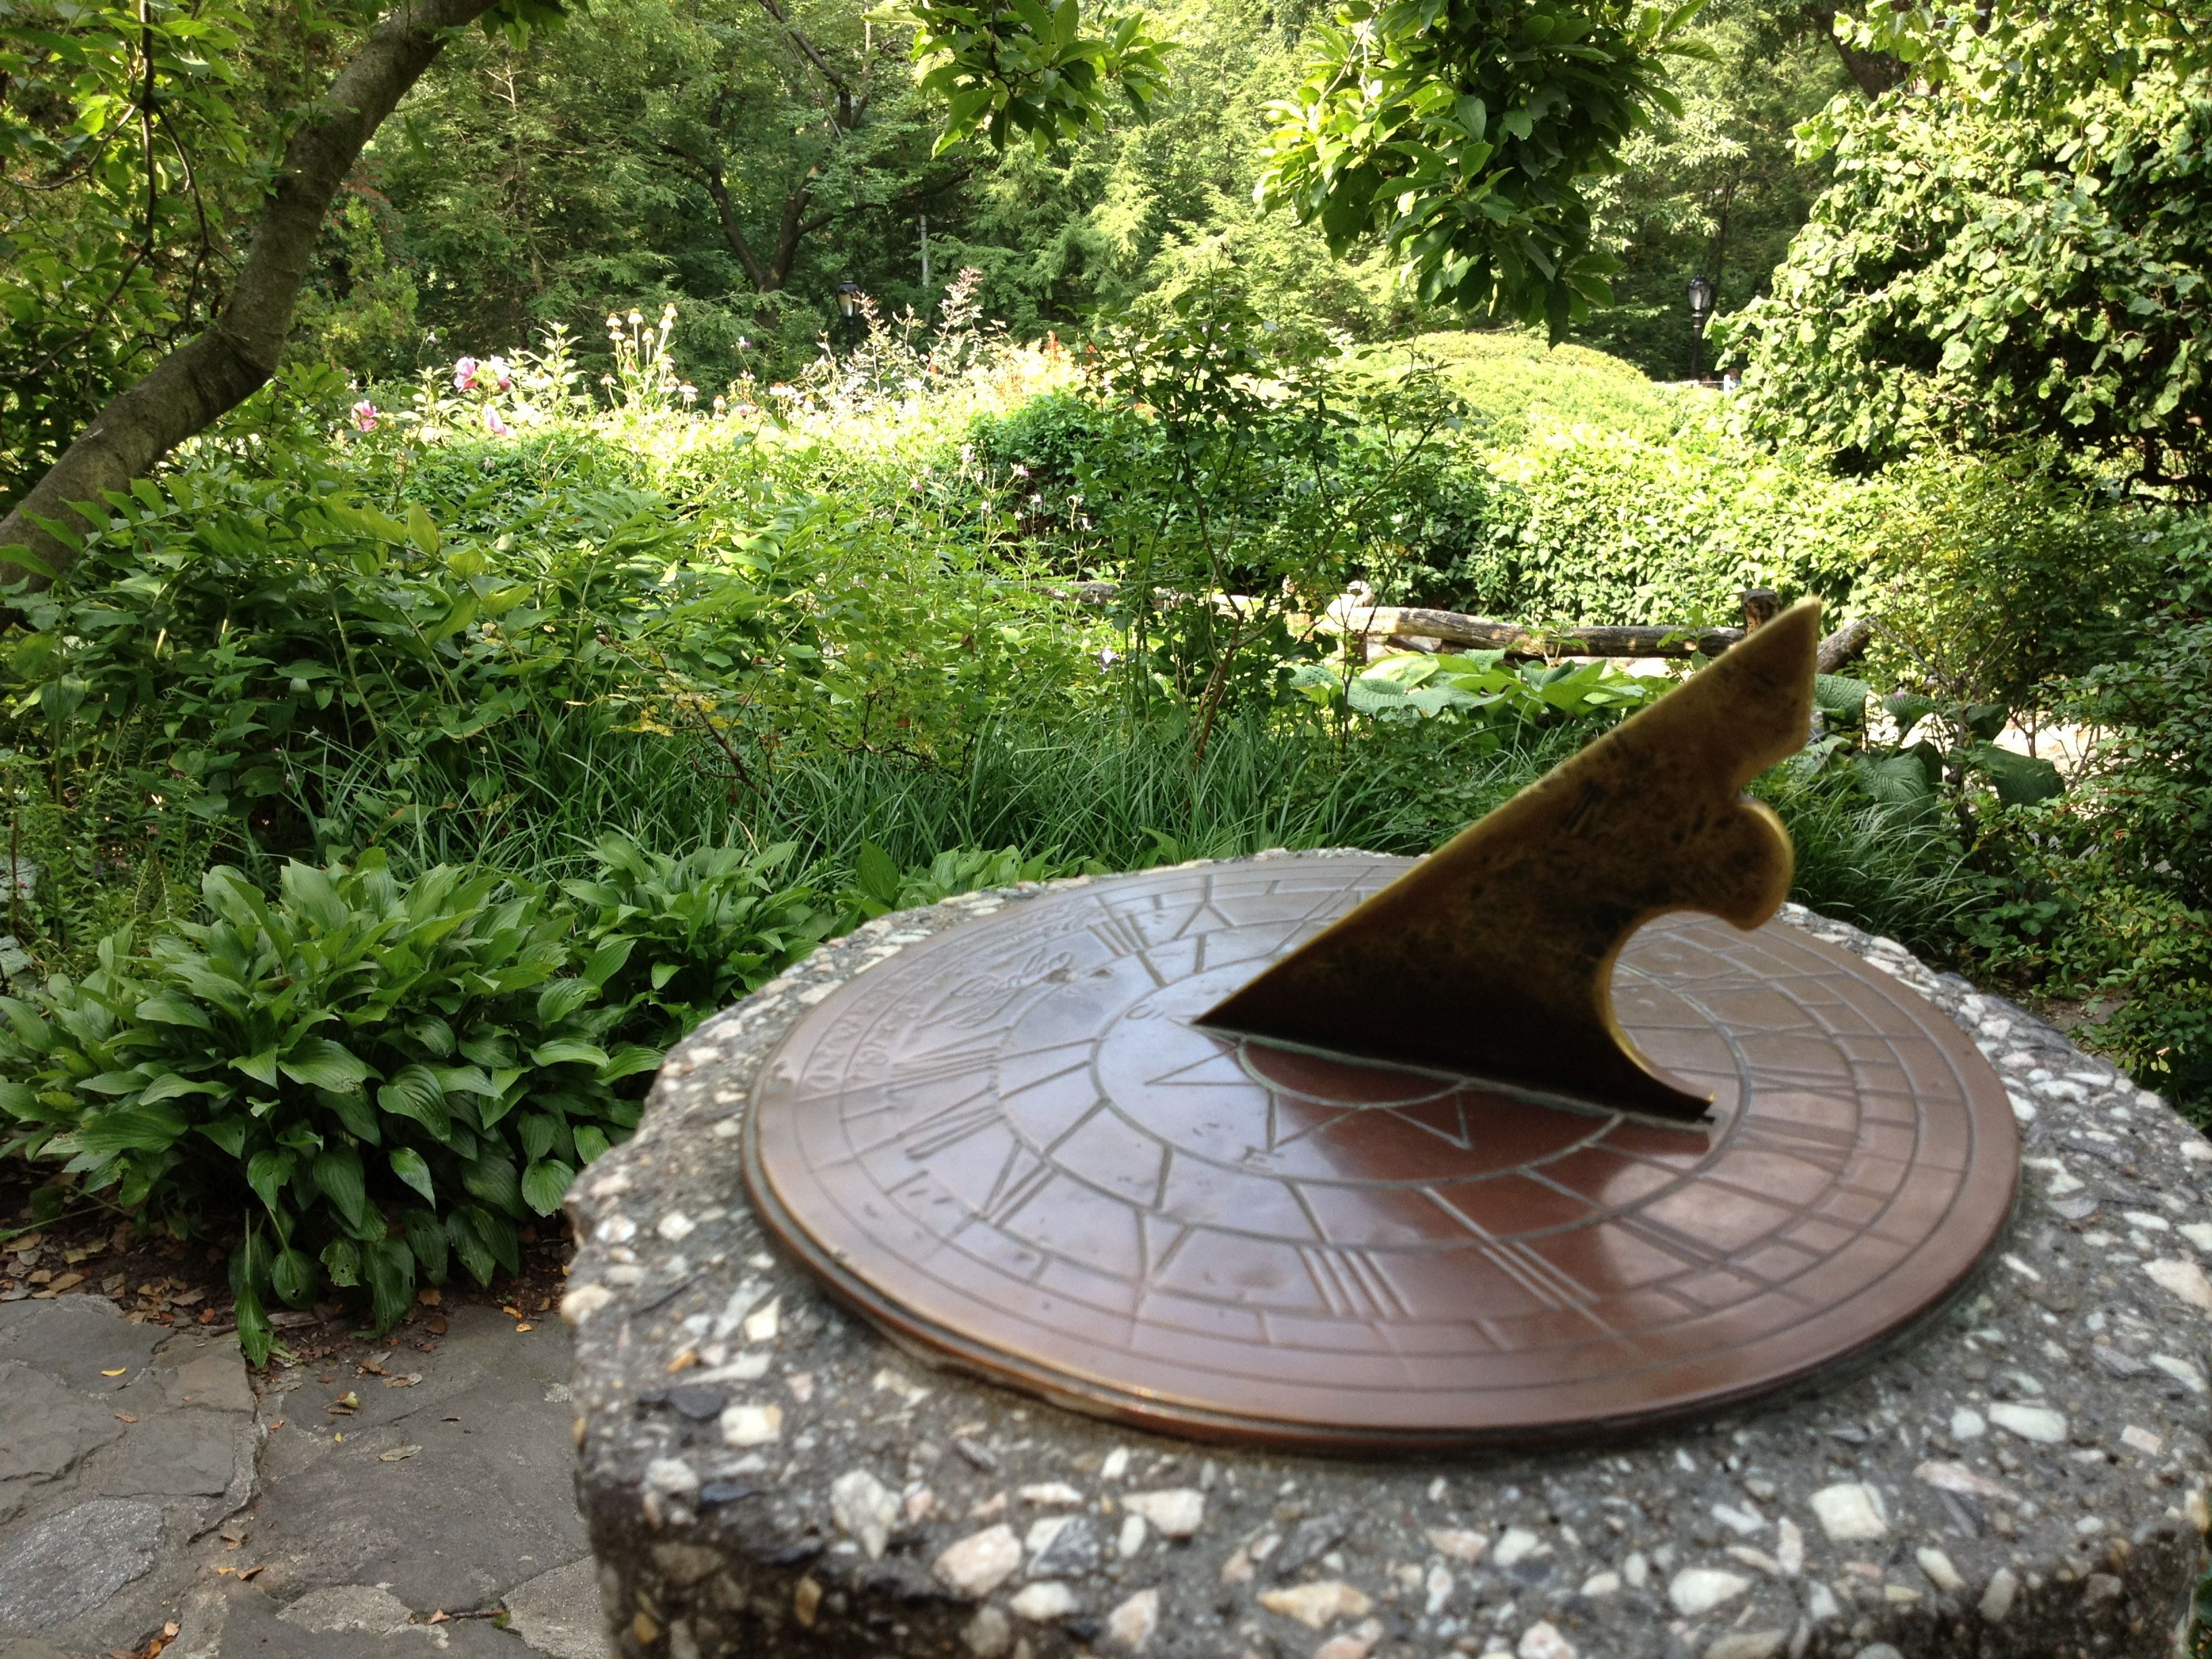 Superieur Timeless And Decorative Garden Sundials Check More At Http://www.wearefound.